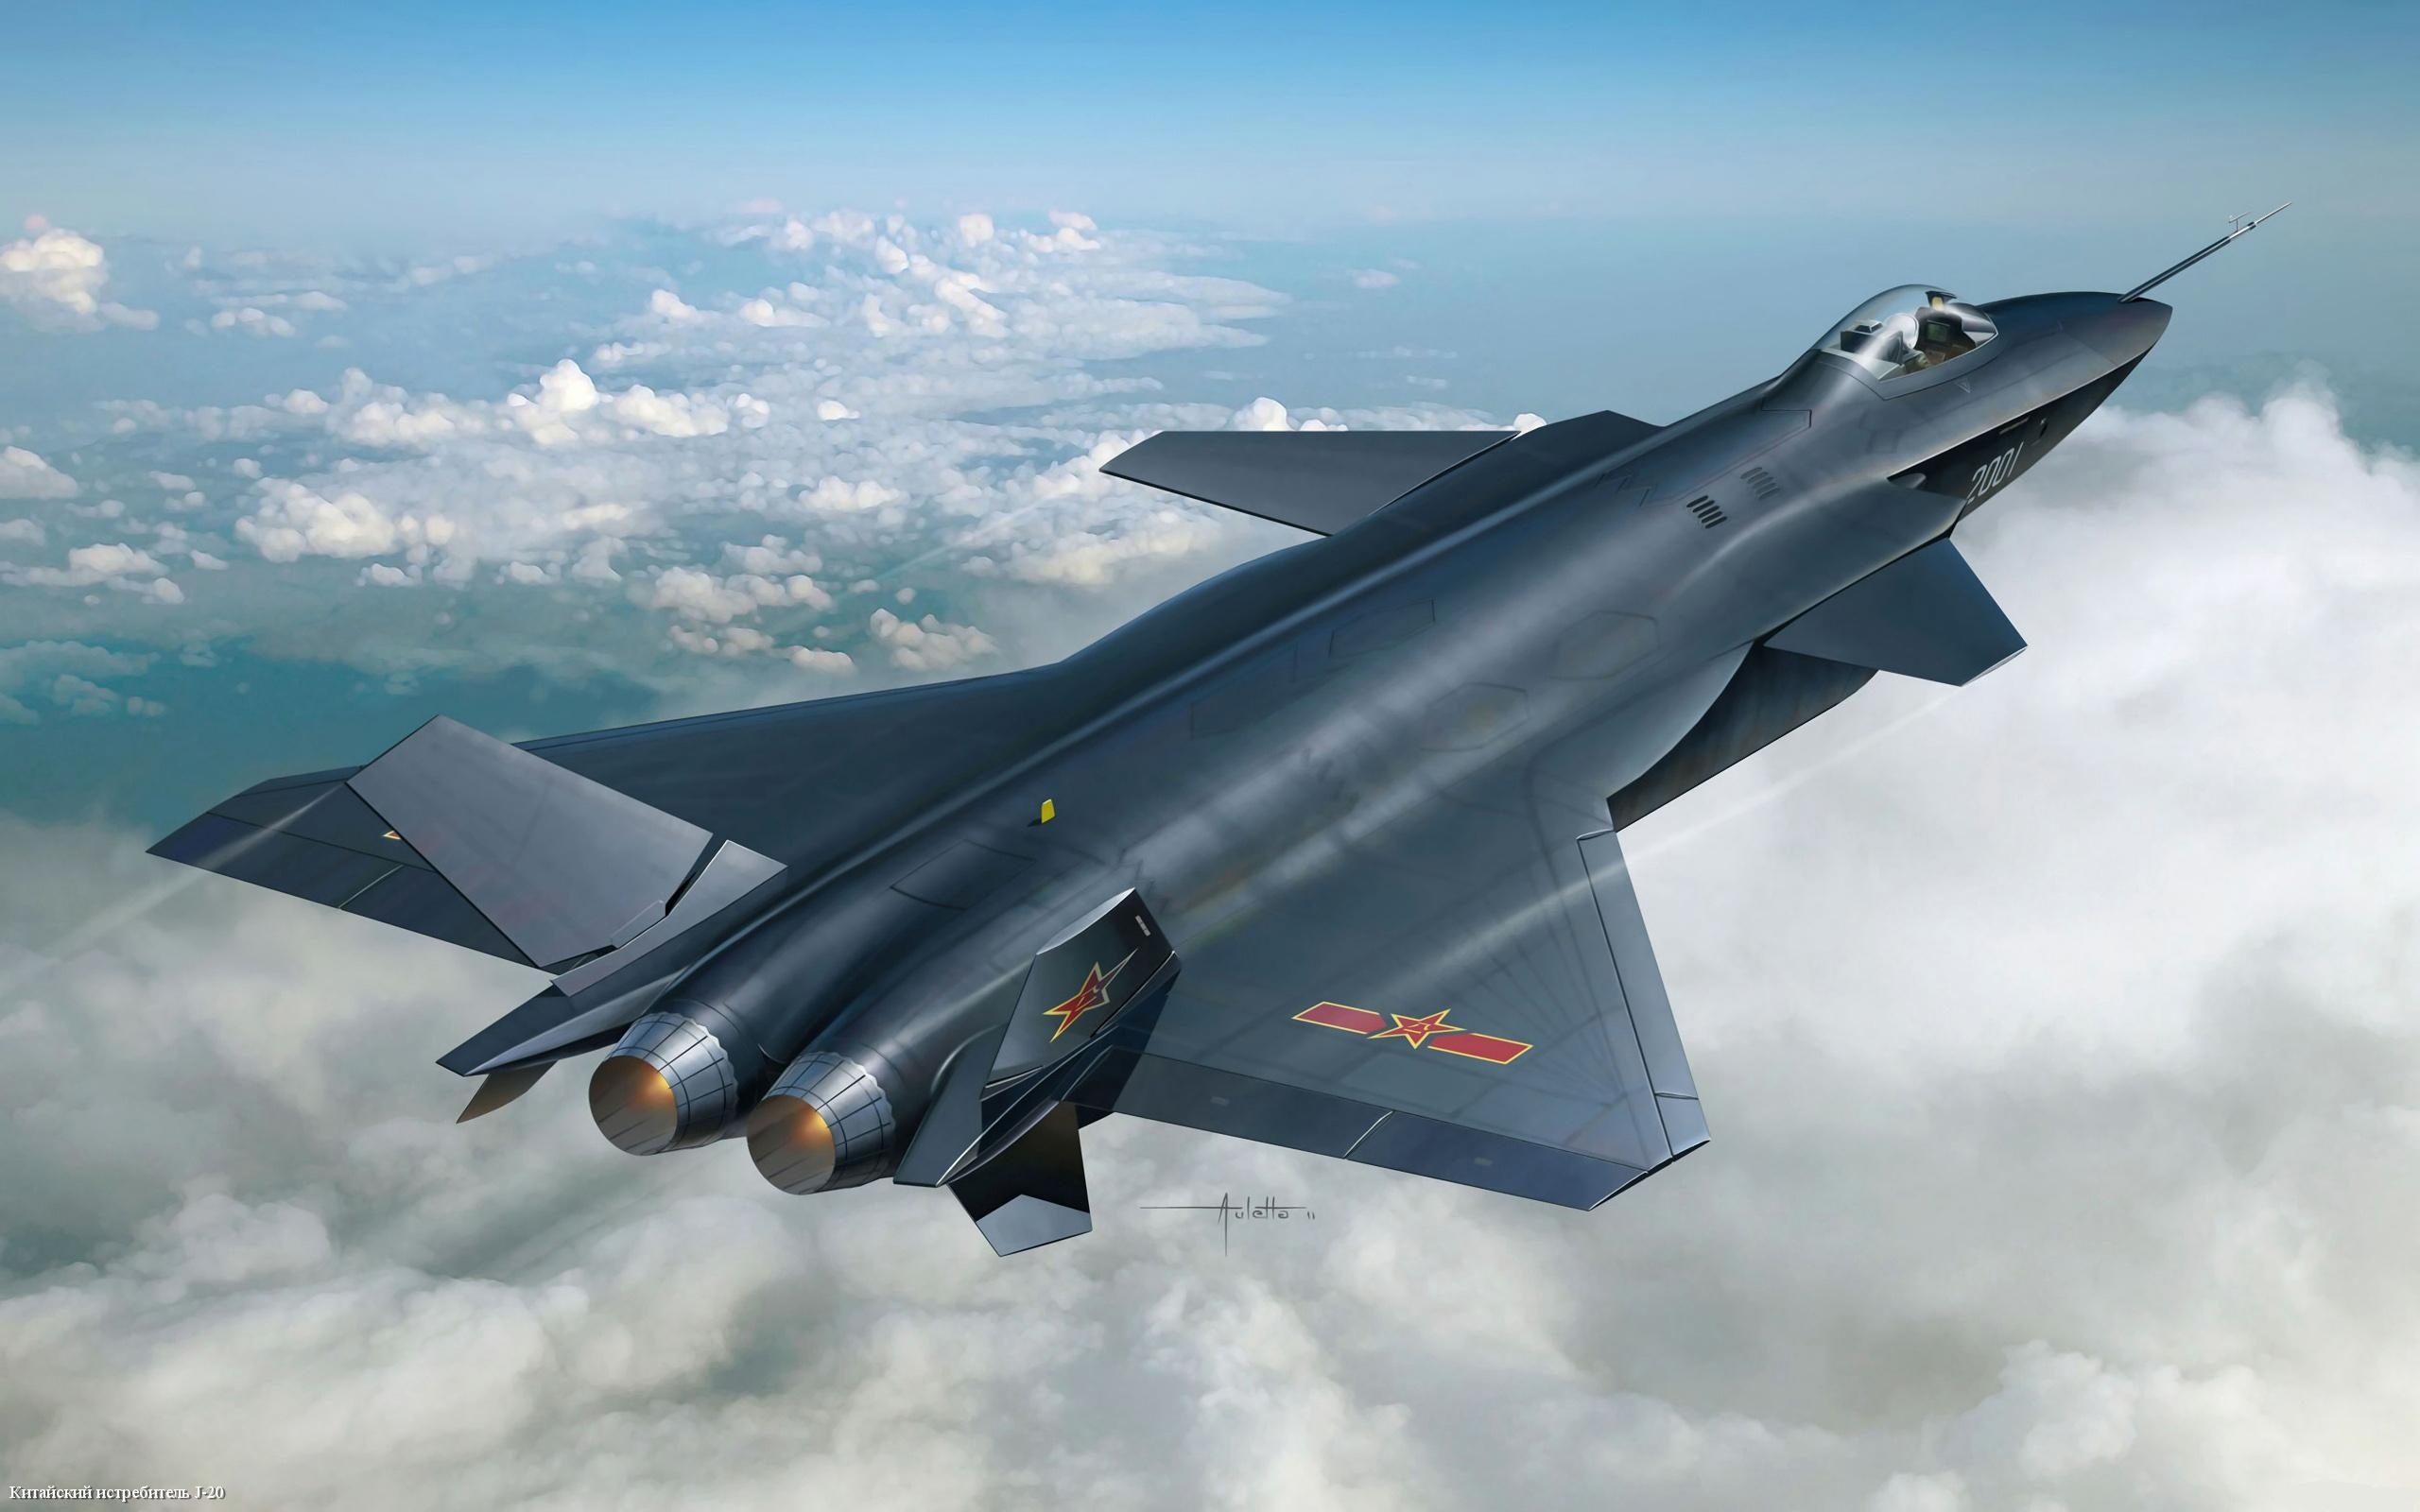 Analysis: Chengdu J-20, The Chinese Raptor?